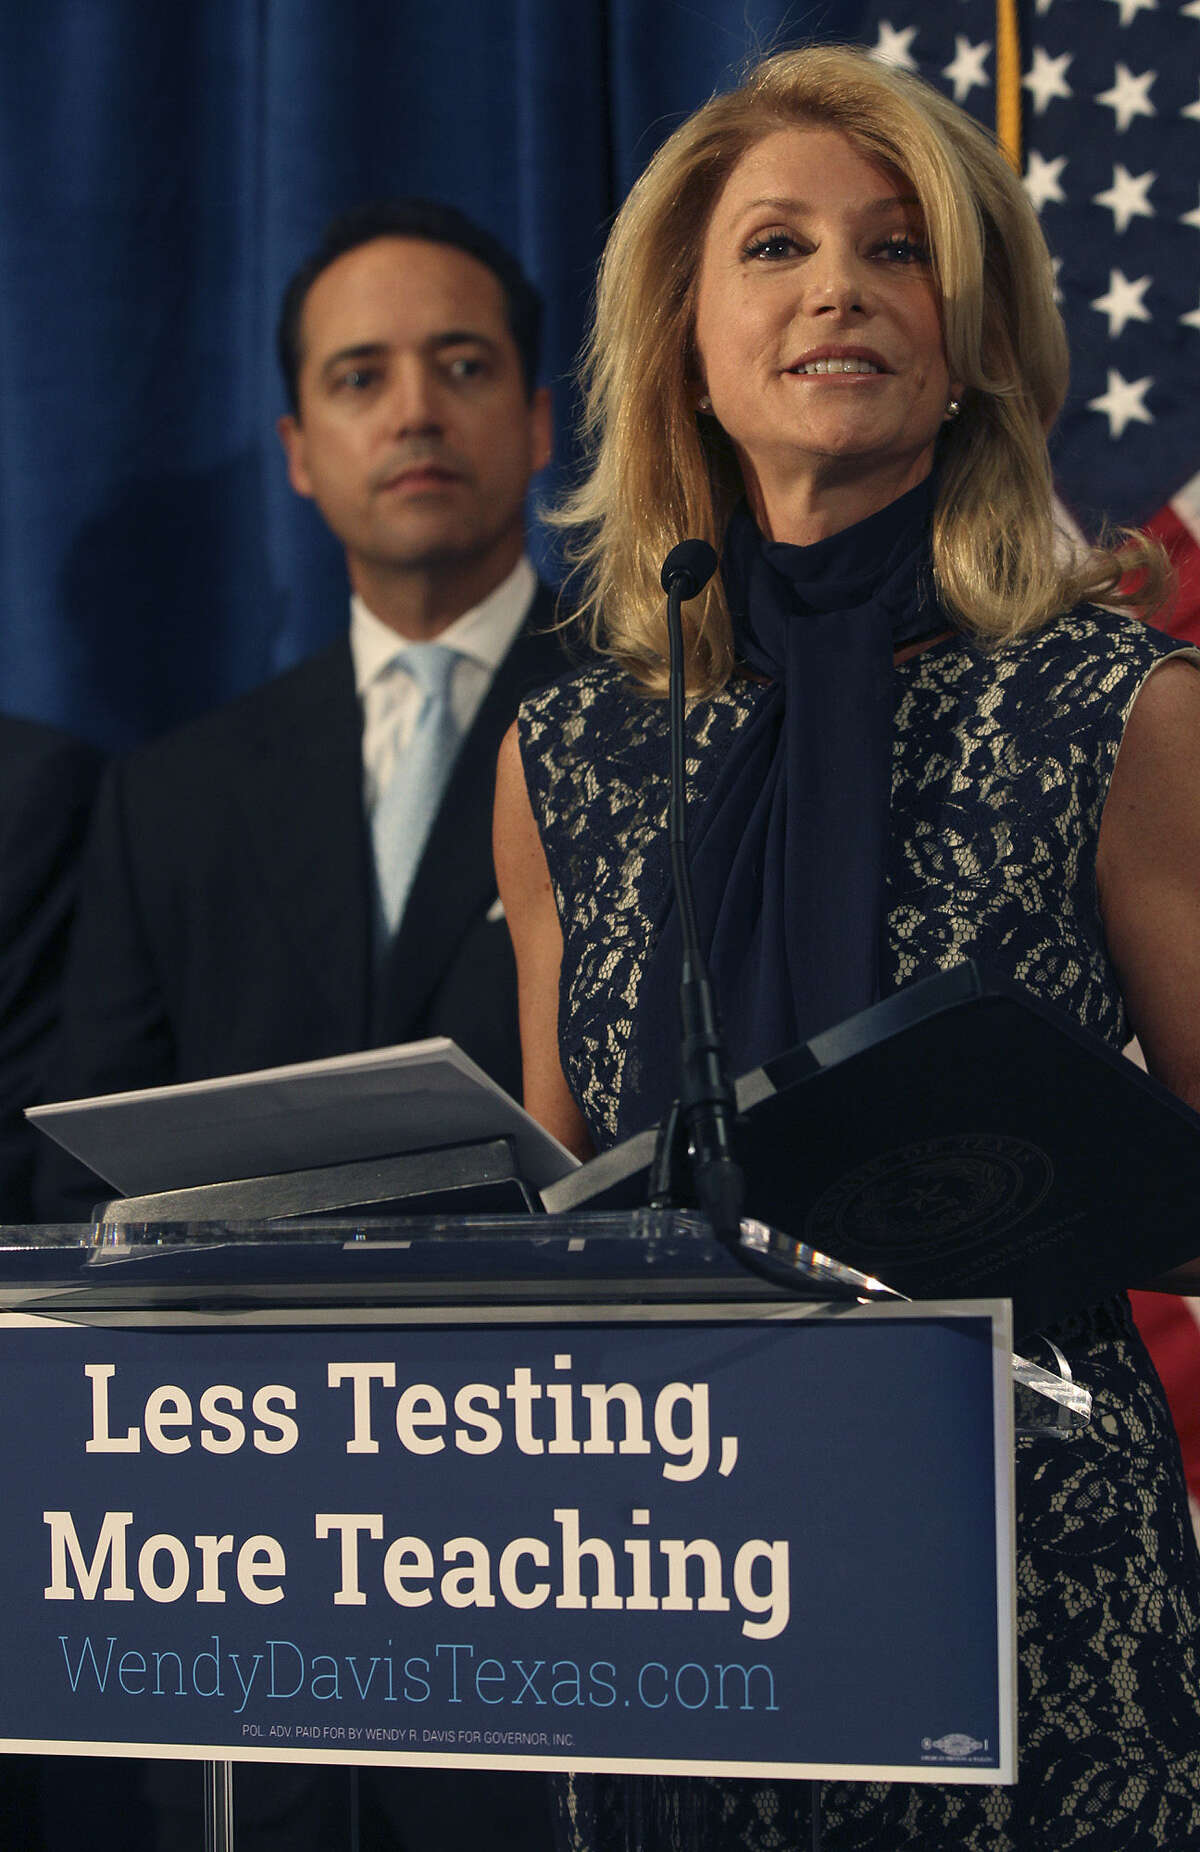 Wendy Davis will need more than her party affiliation.